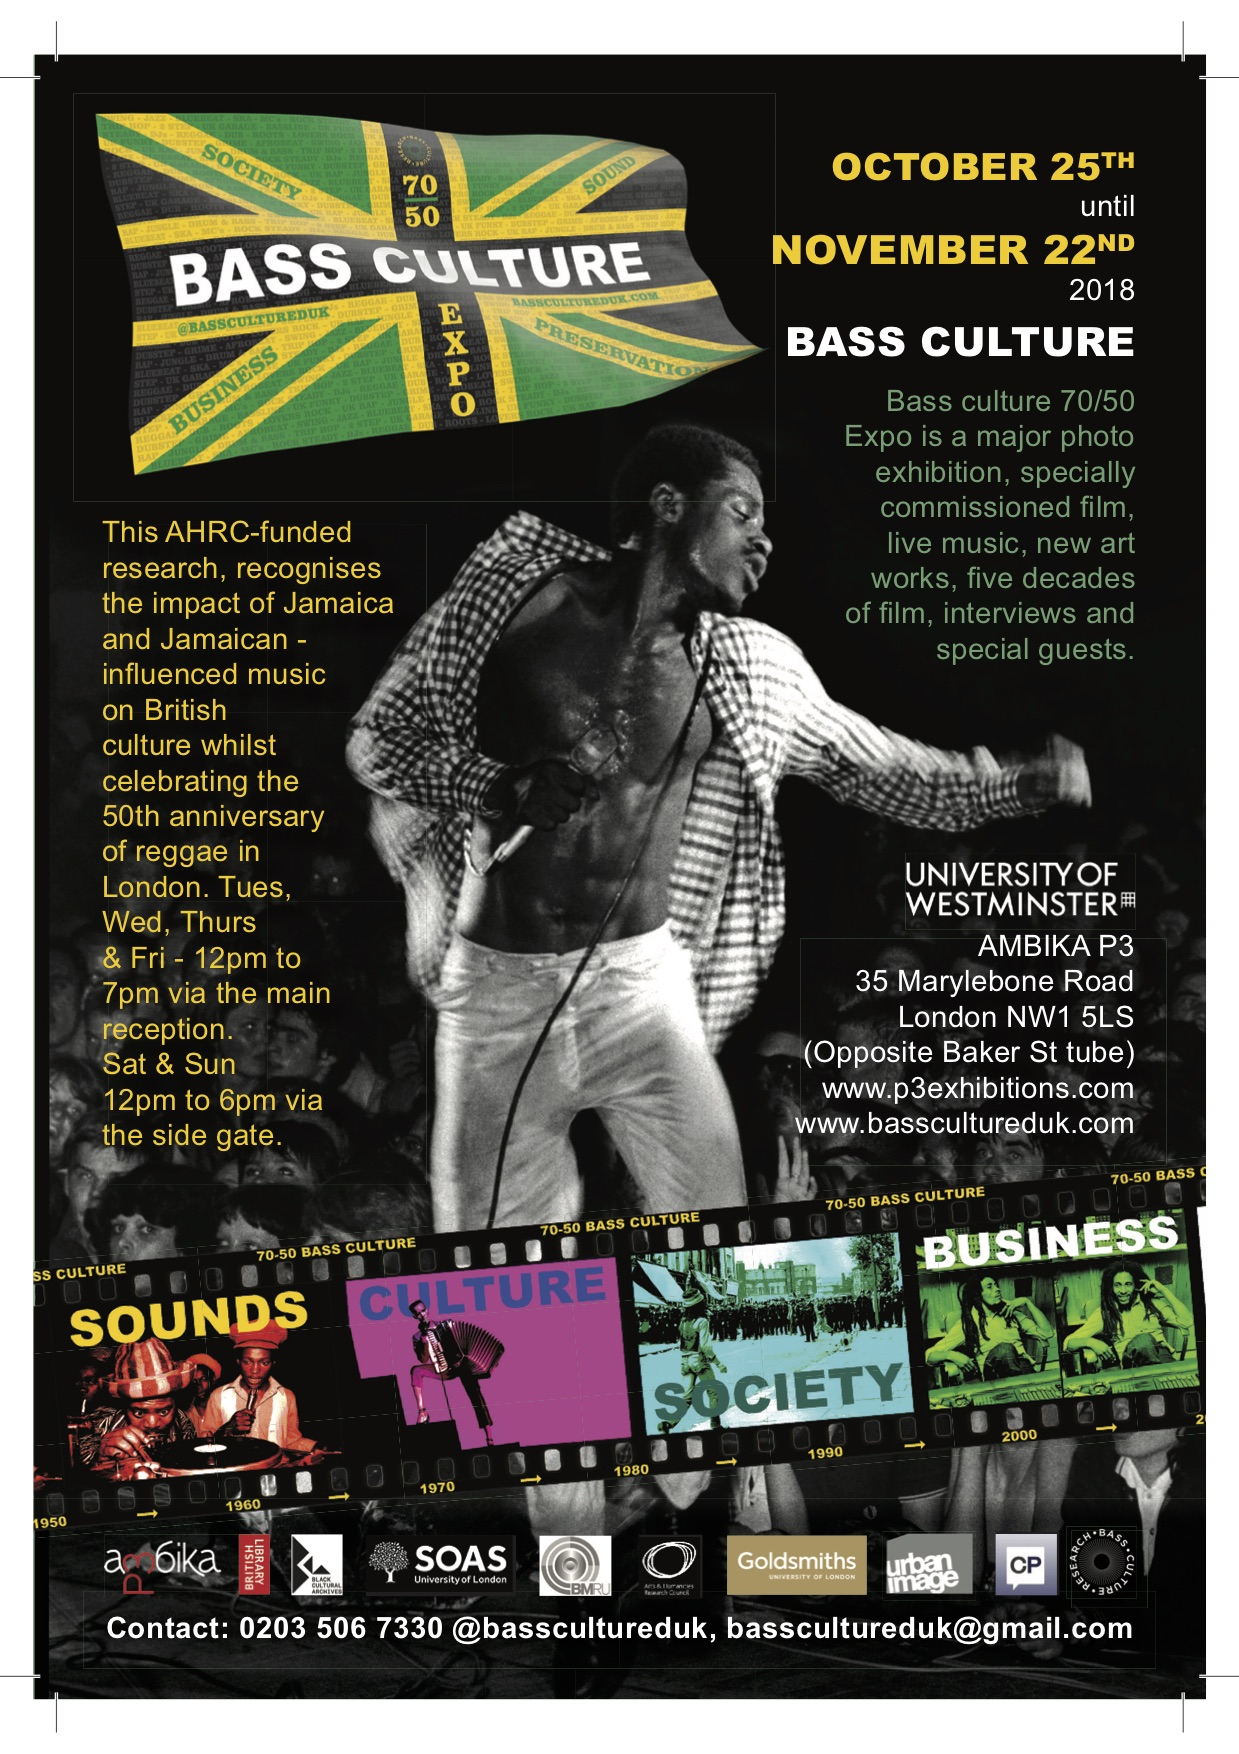 Bass Culture 70/50: The UK's largest Jamaican music